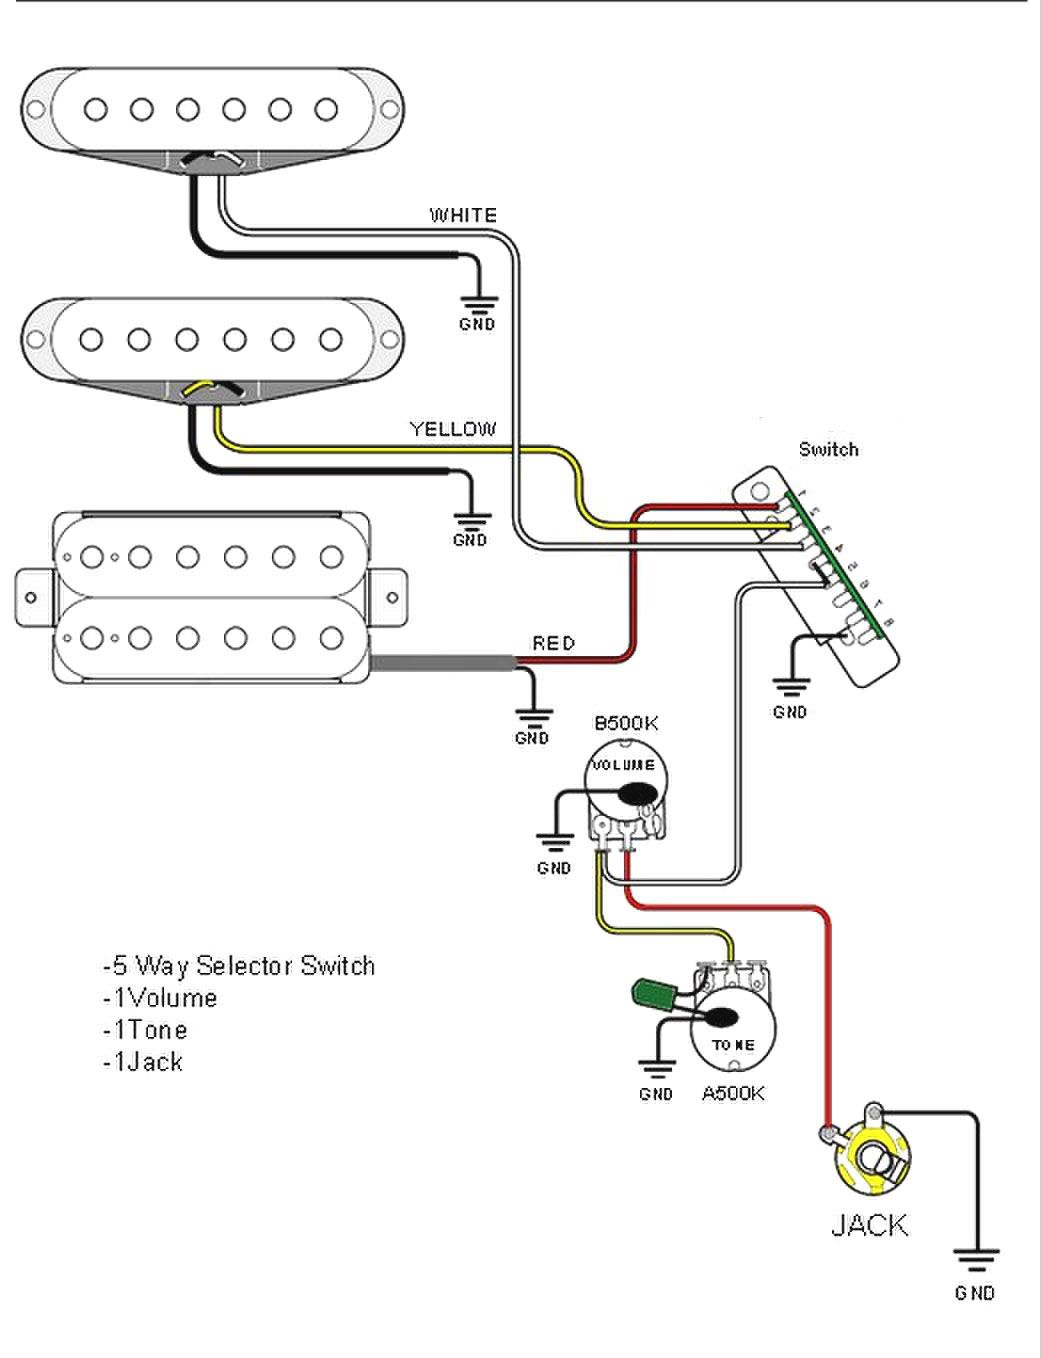 hss guitar wiring diagram hss wiring diagrams hss wiring diagram hss wiring diagrams